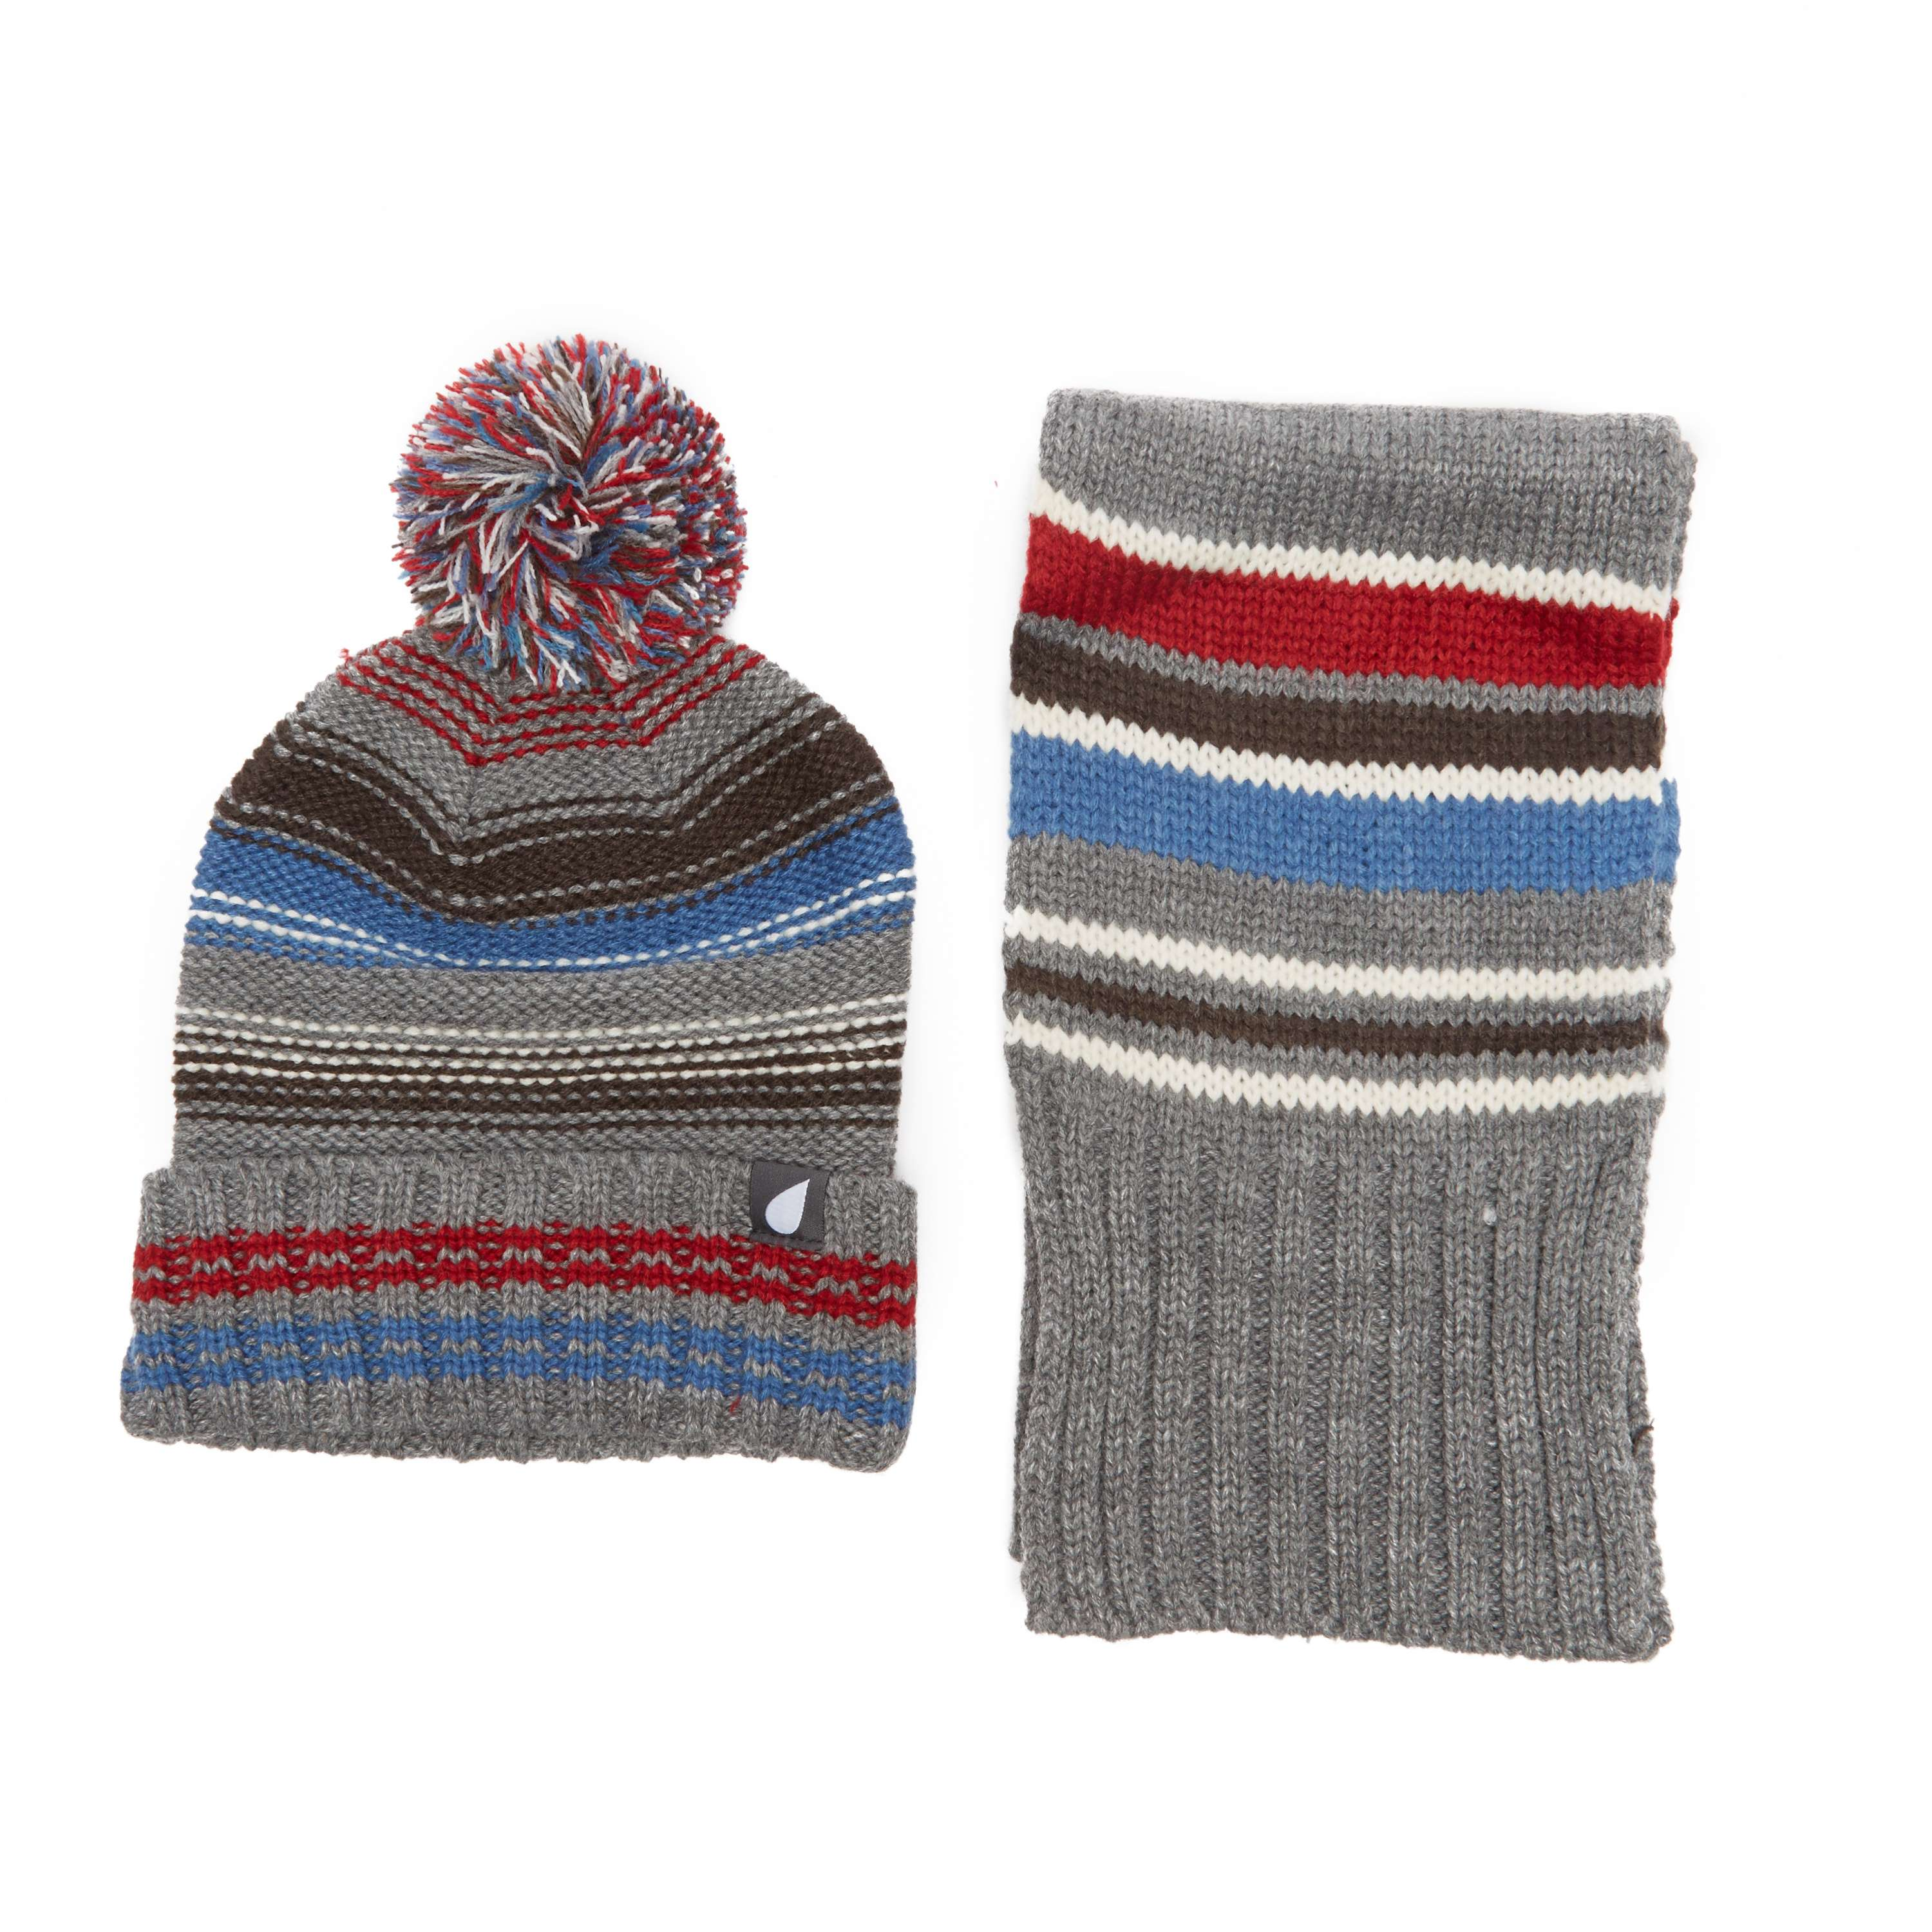 PETER STORM Kids' Hat and Scarf Set